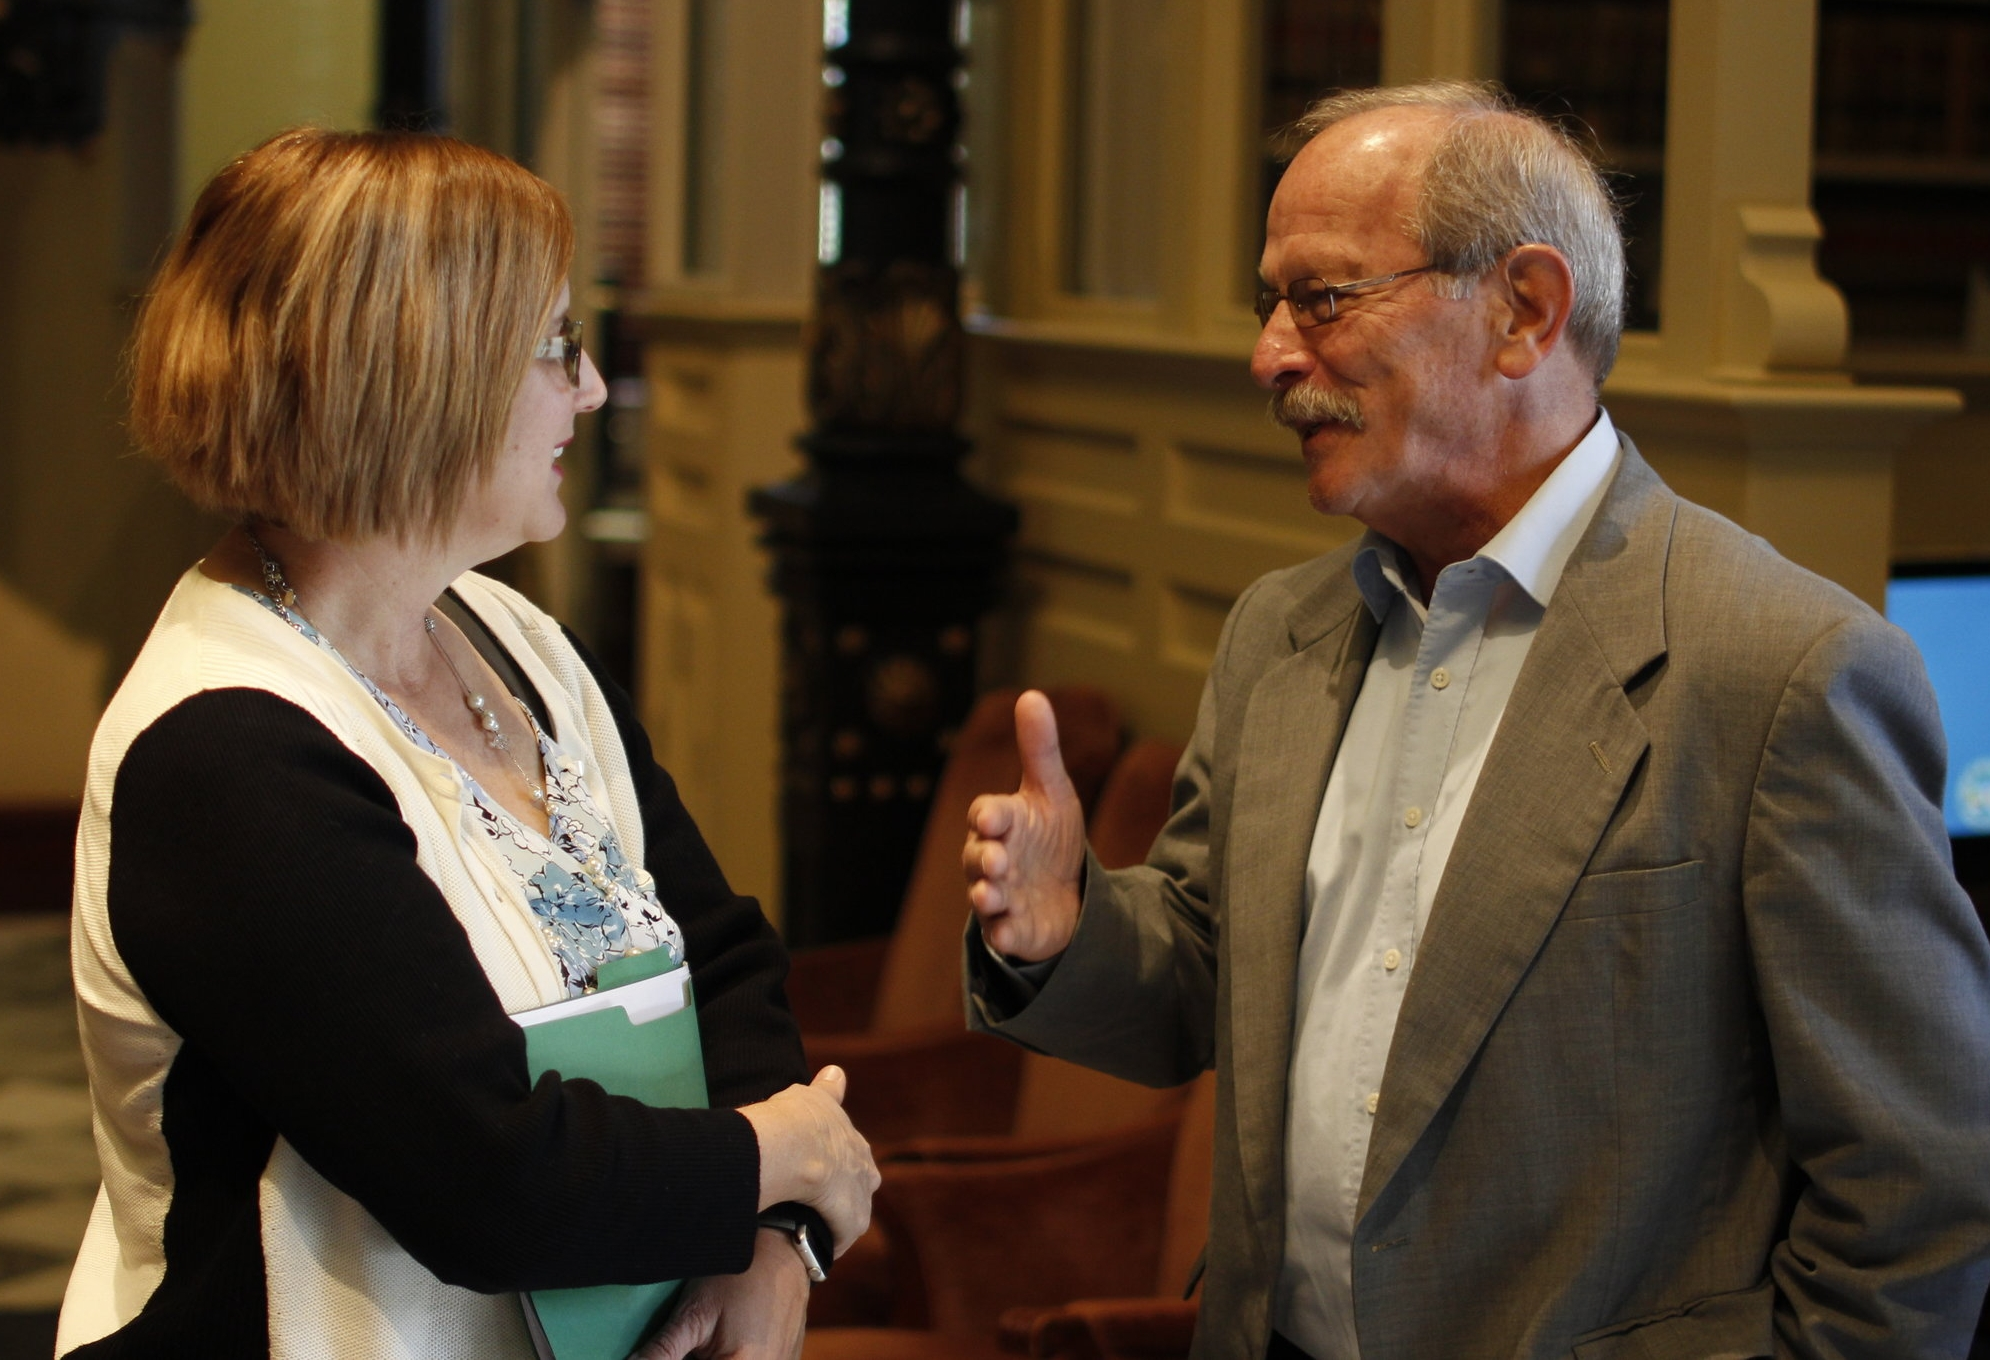 Don Caughman + Jackie Richards at the South Carolina Statehouse during a Palmetto Council for Internationals (PCIV) event.